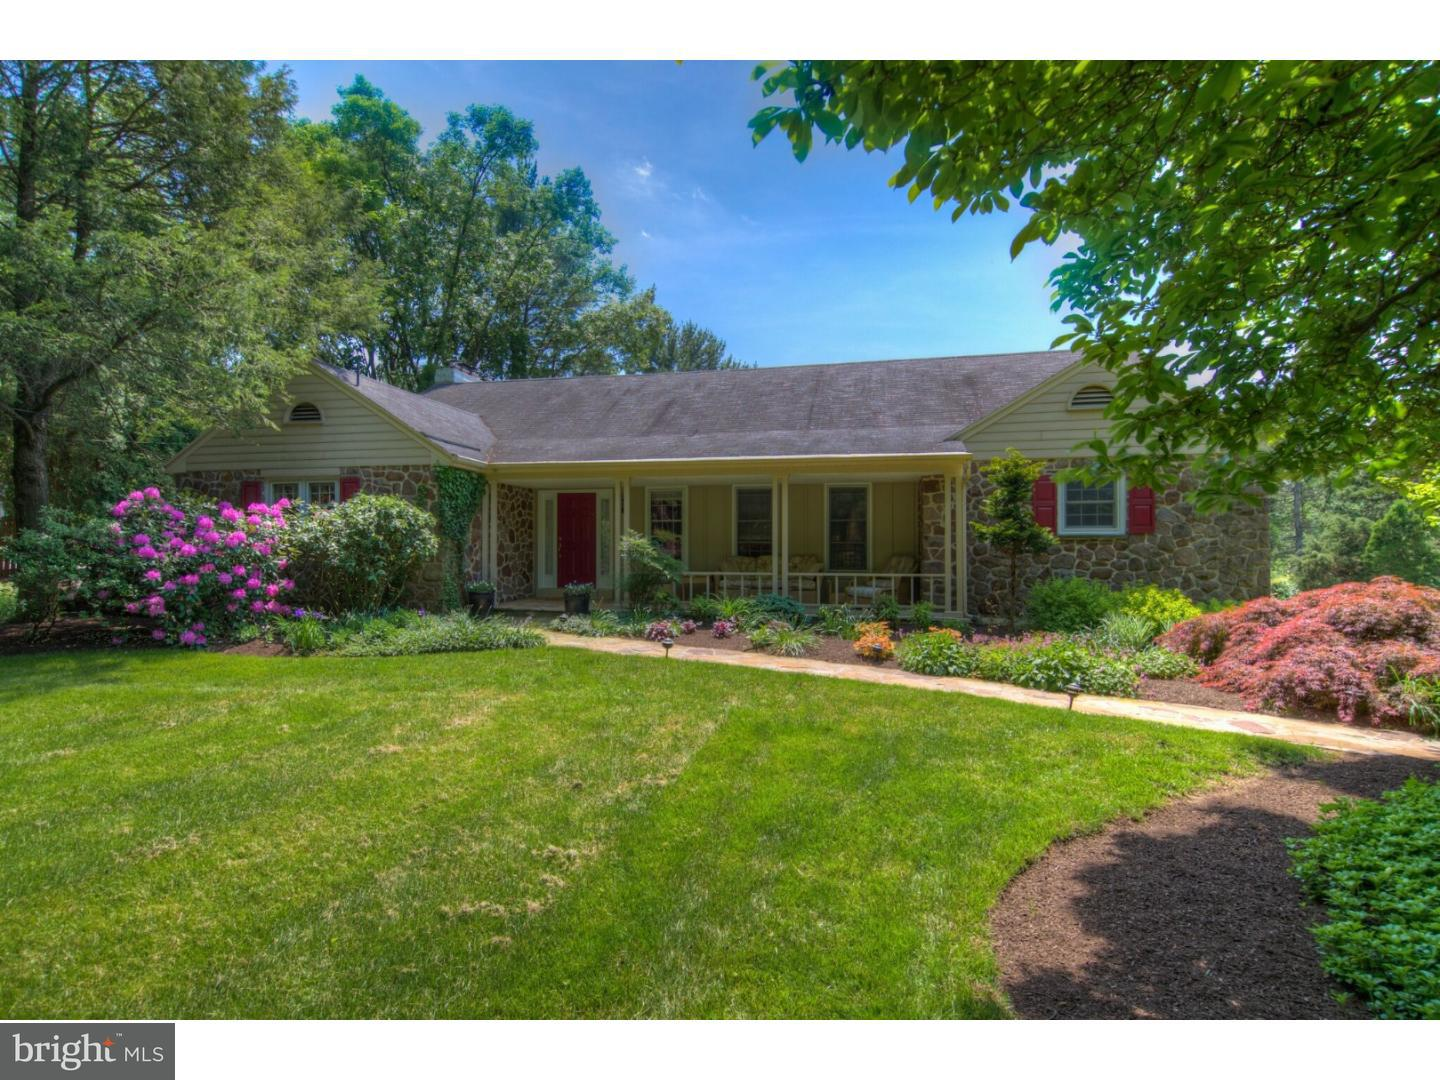 714 Darby Paoli Road Newtown Square, PA 19073